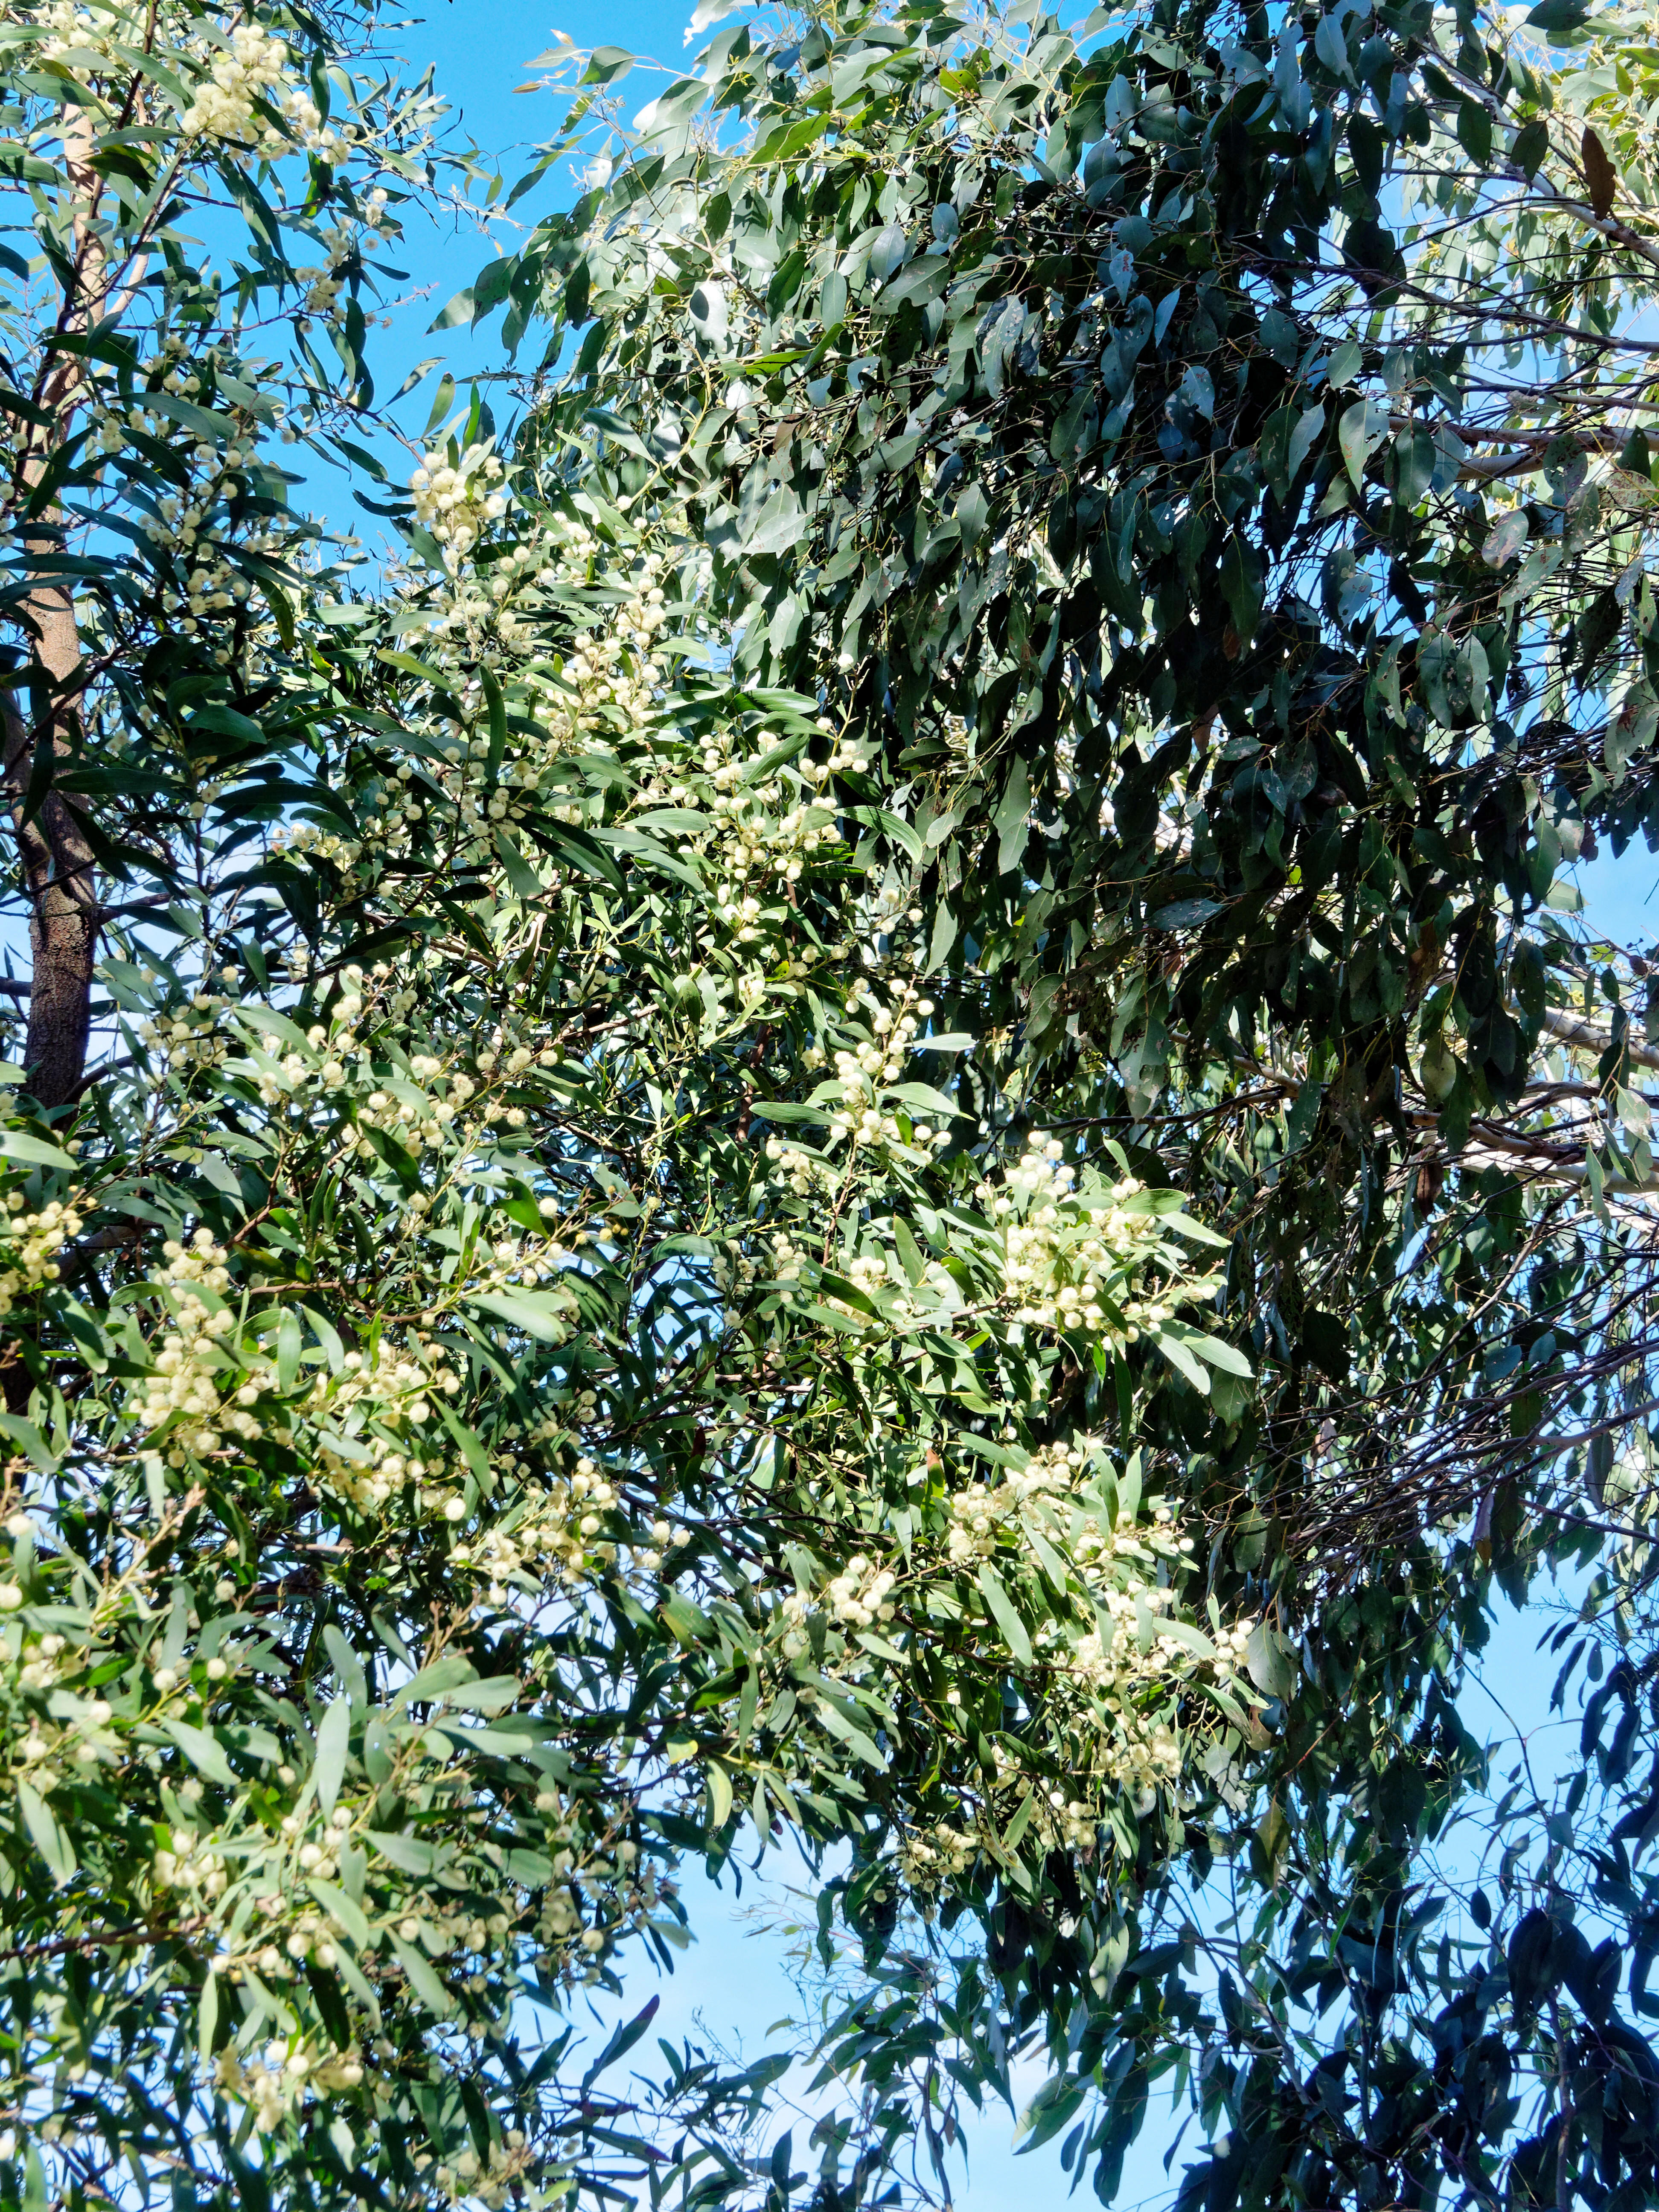 This should be Flowering-eucalypt-1.jpeg.  Is it missing?